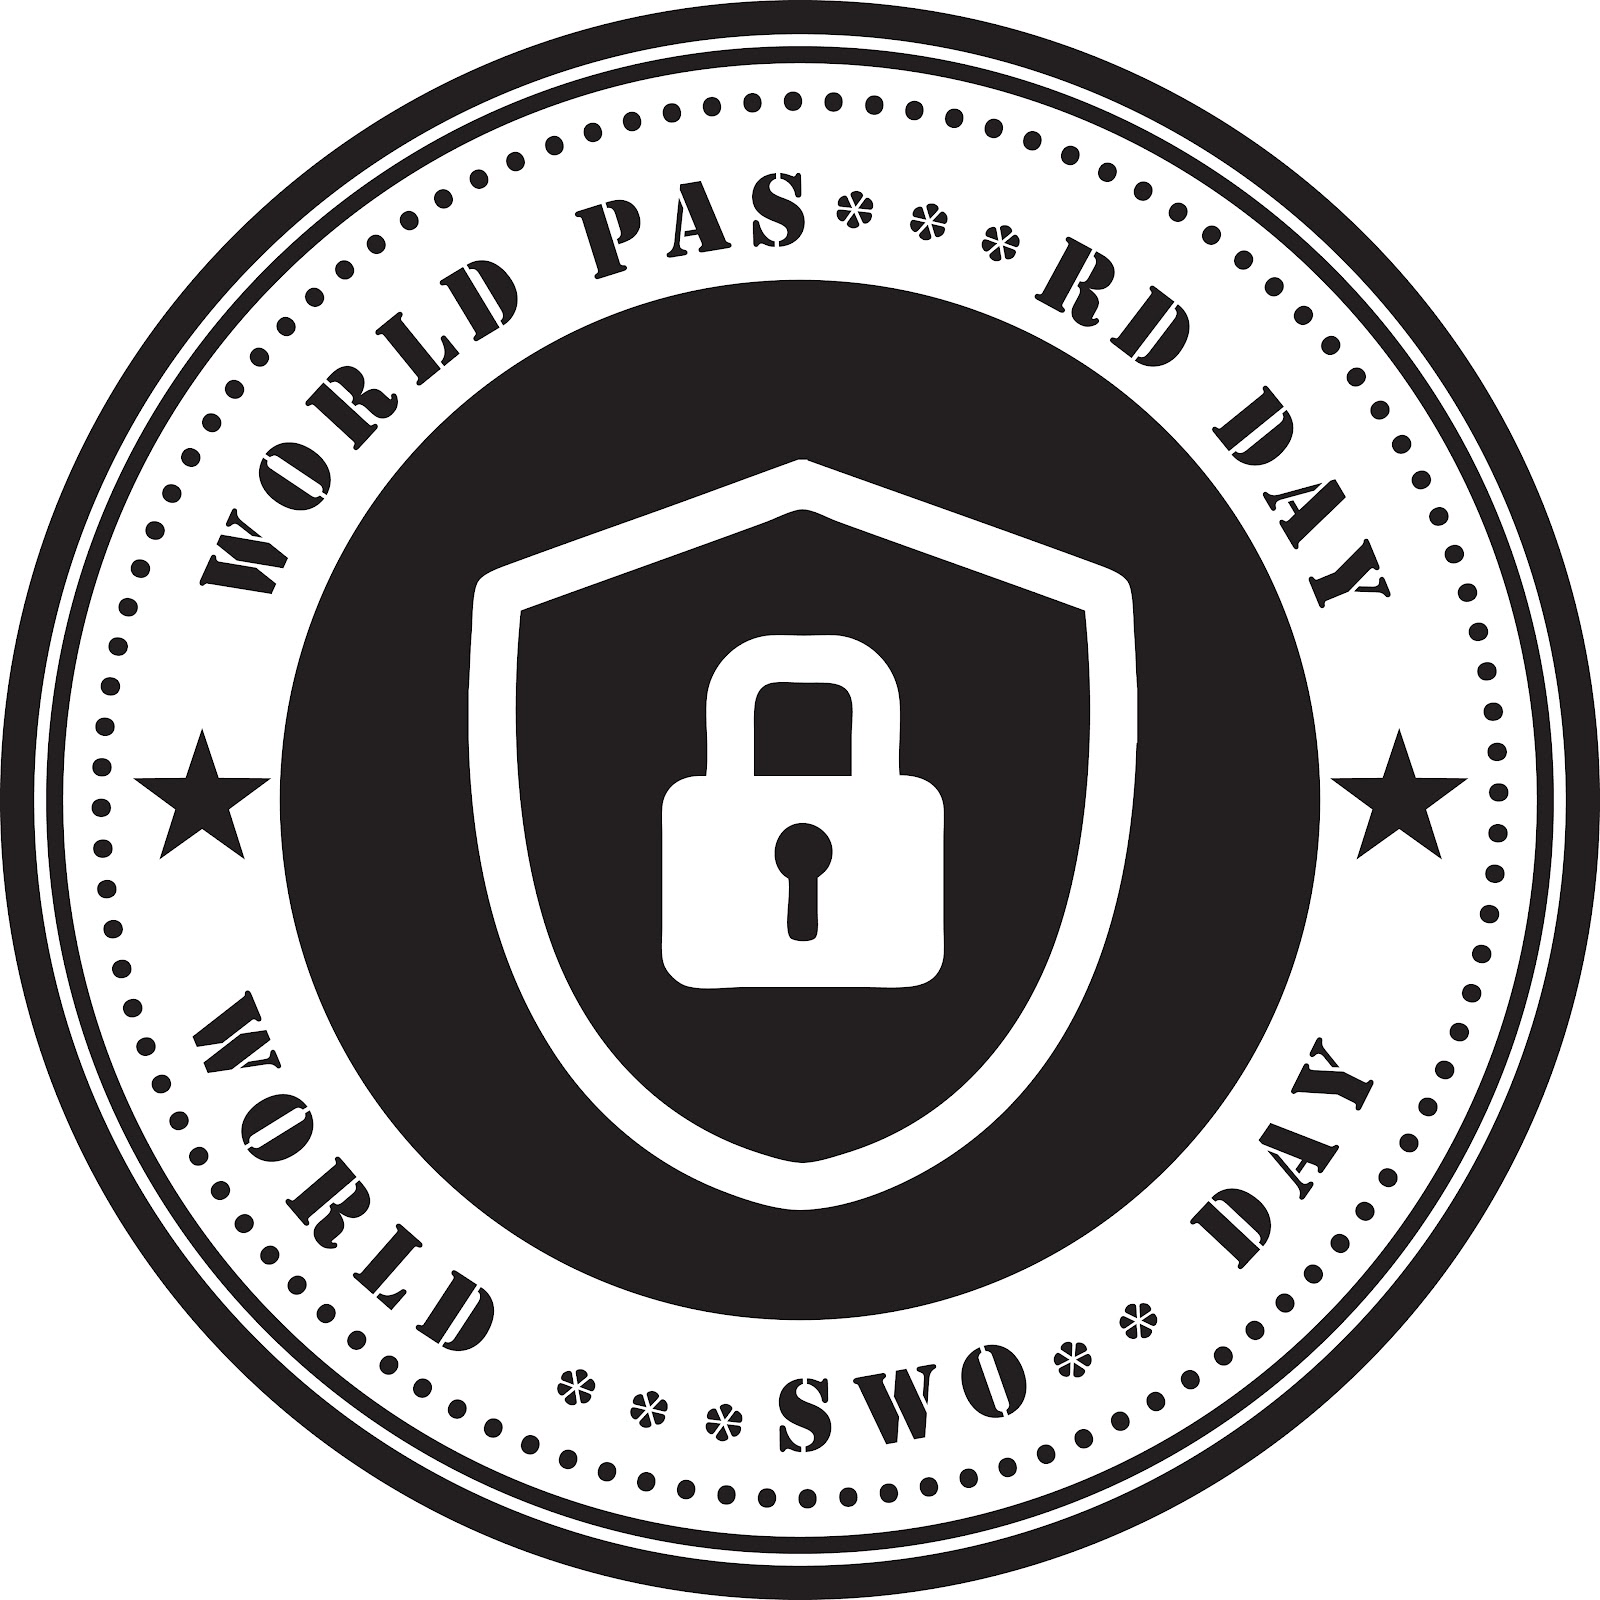 world password day 2